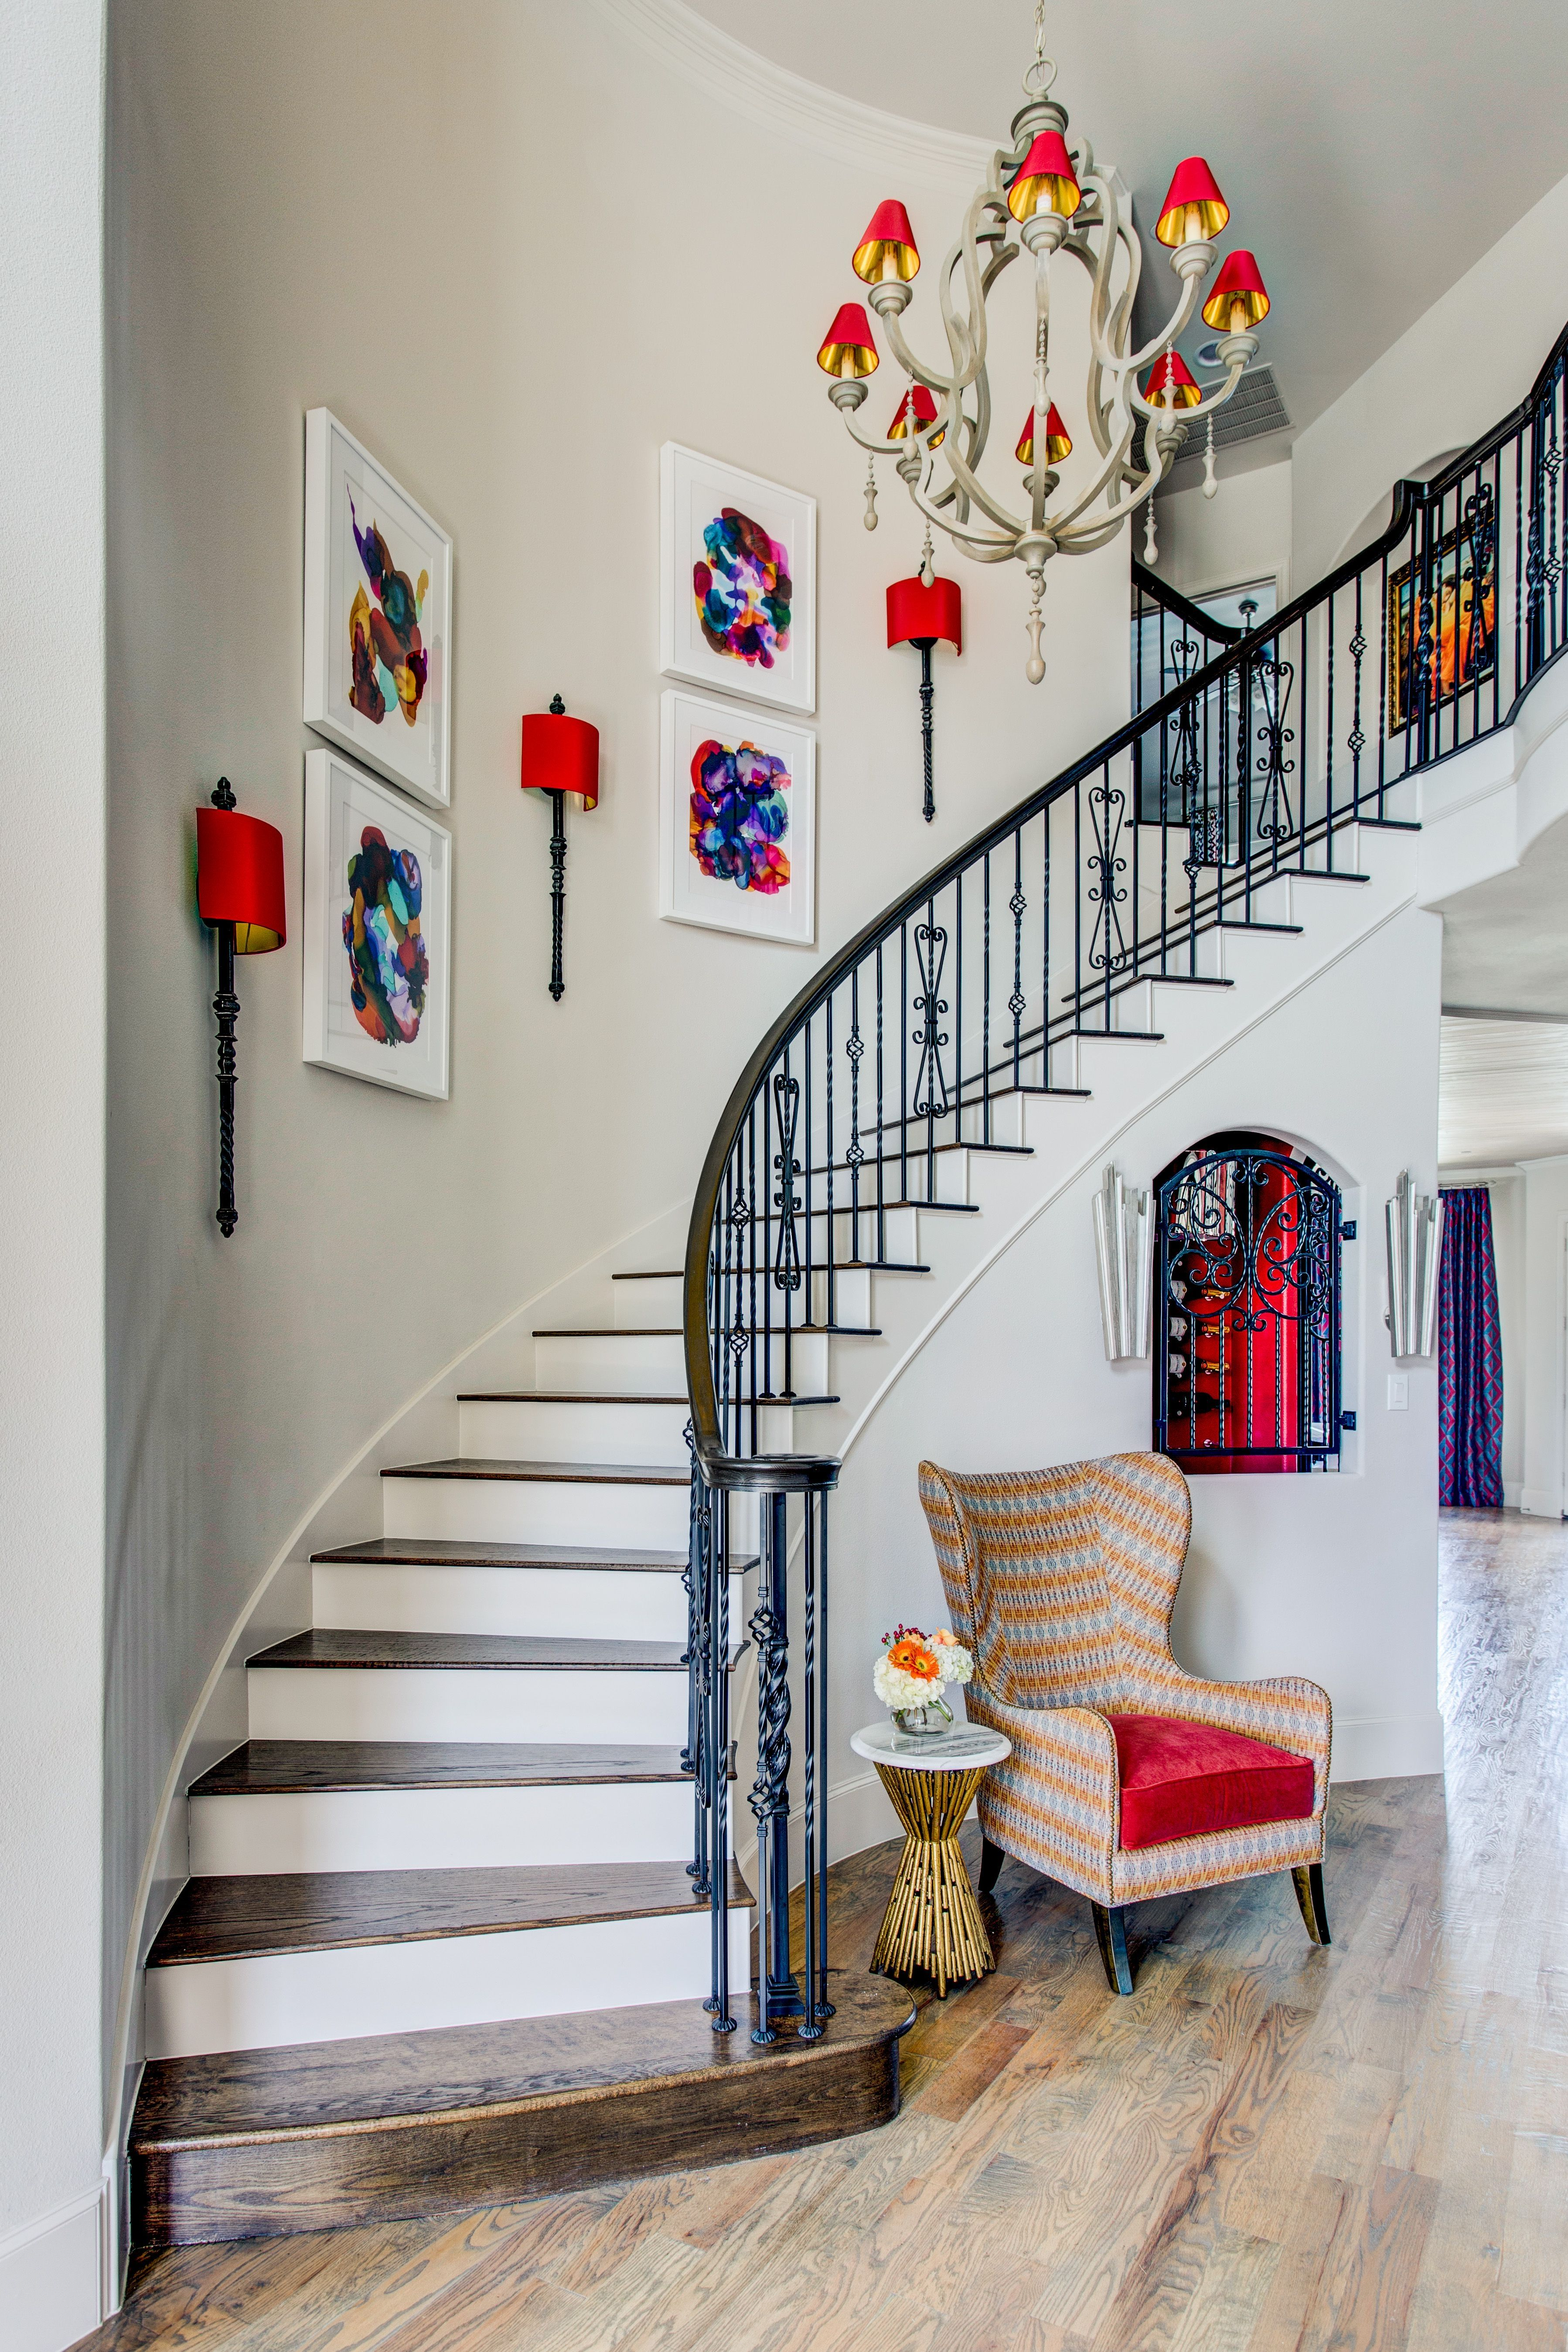 Marvelous Photo Of Reading Area Under Stairs Home Design Wall